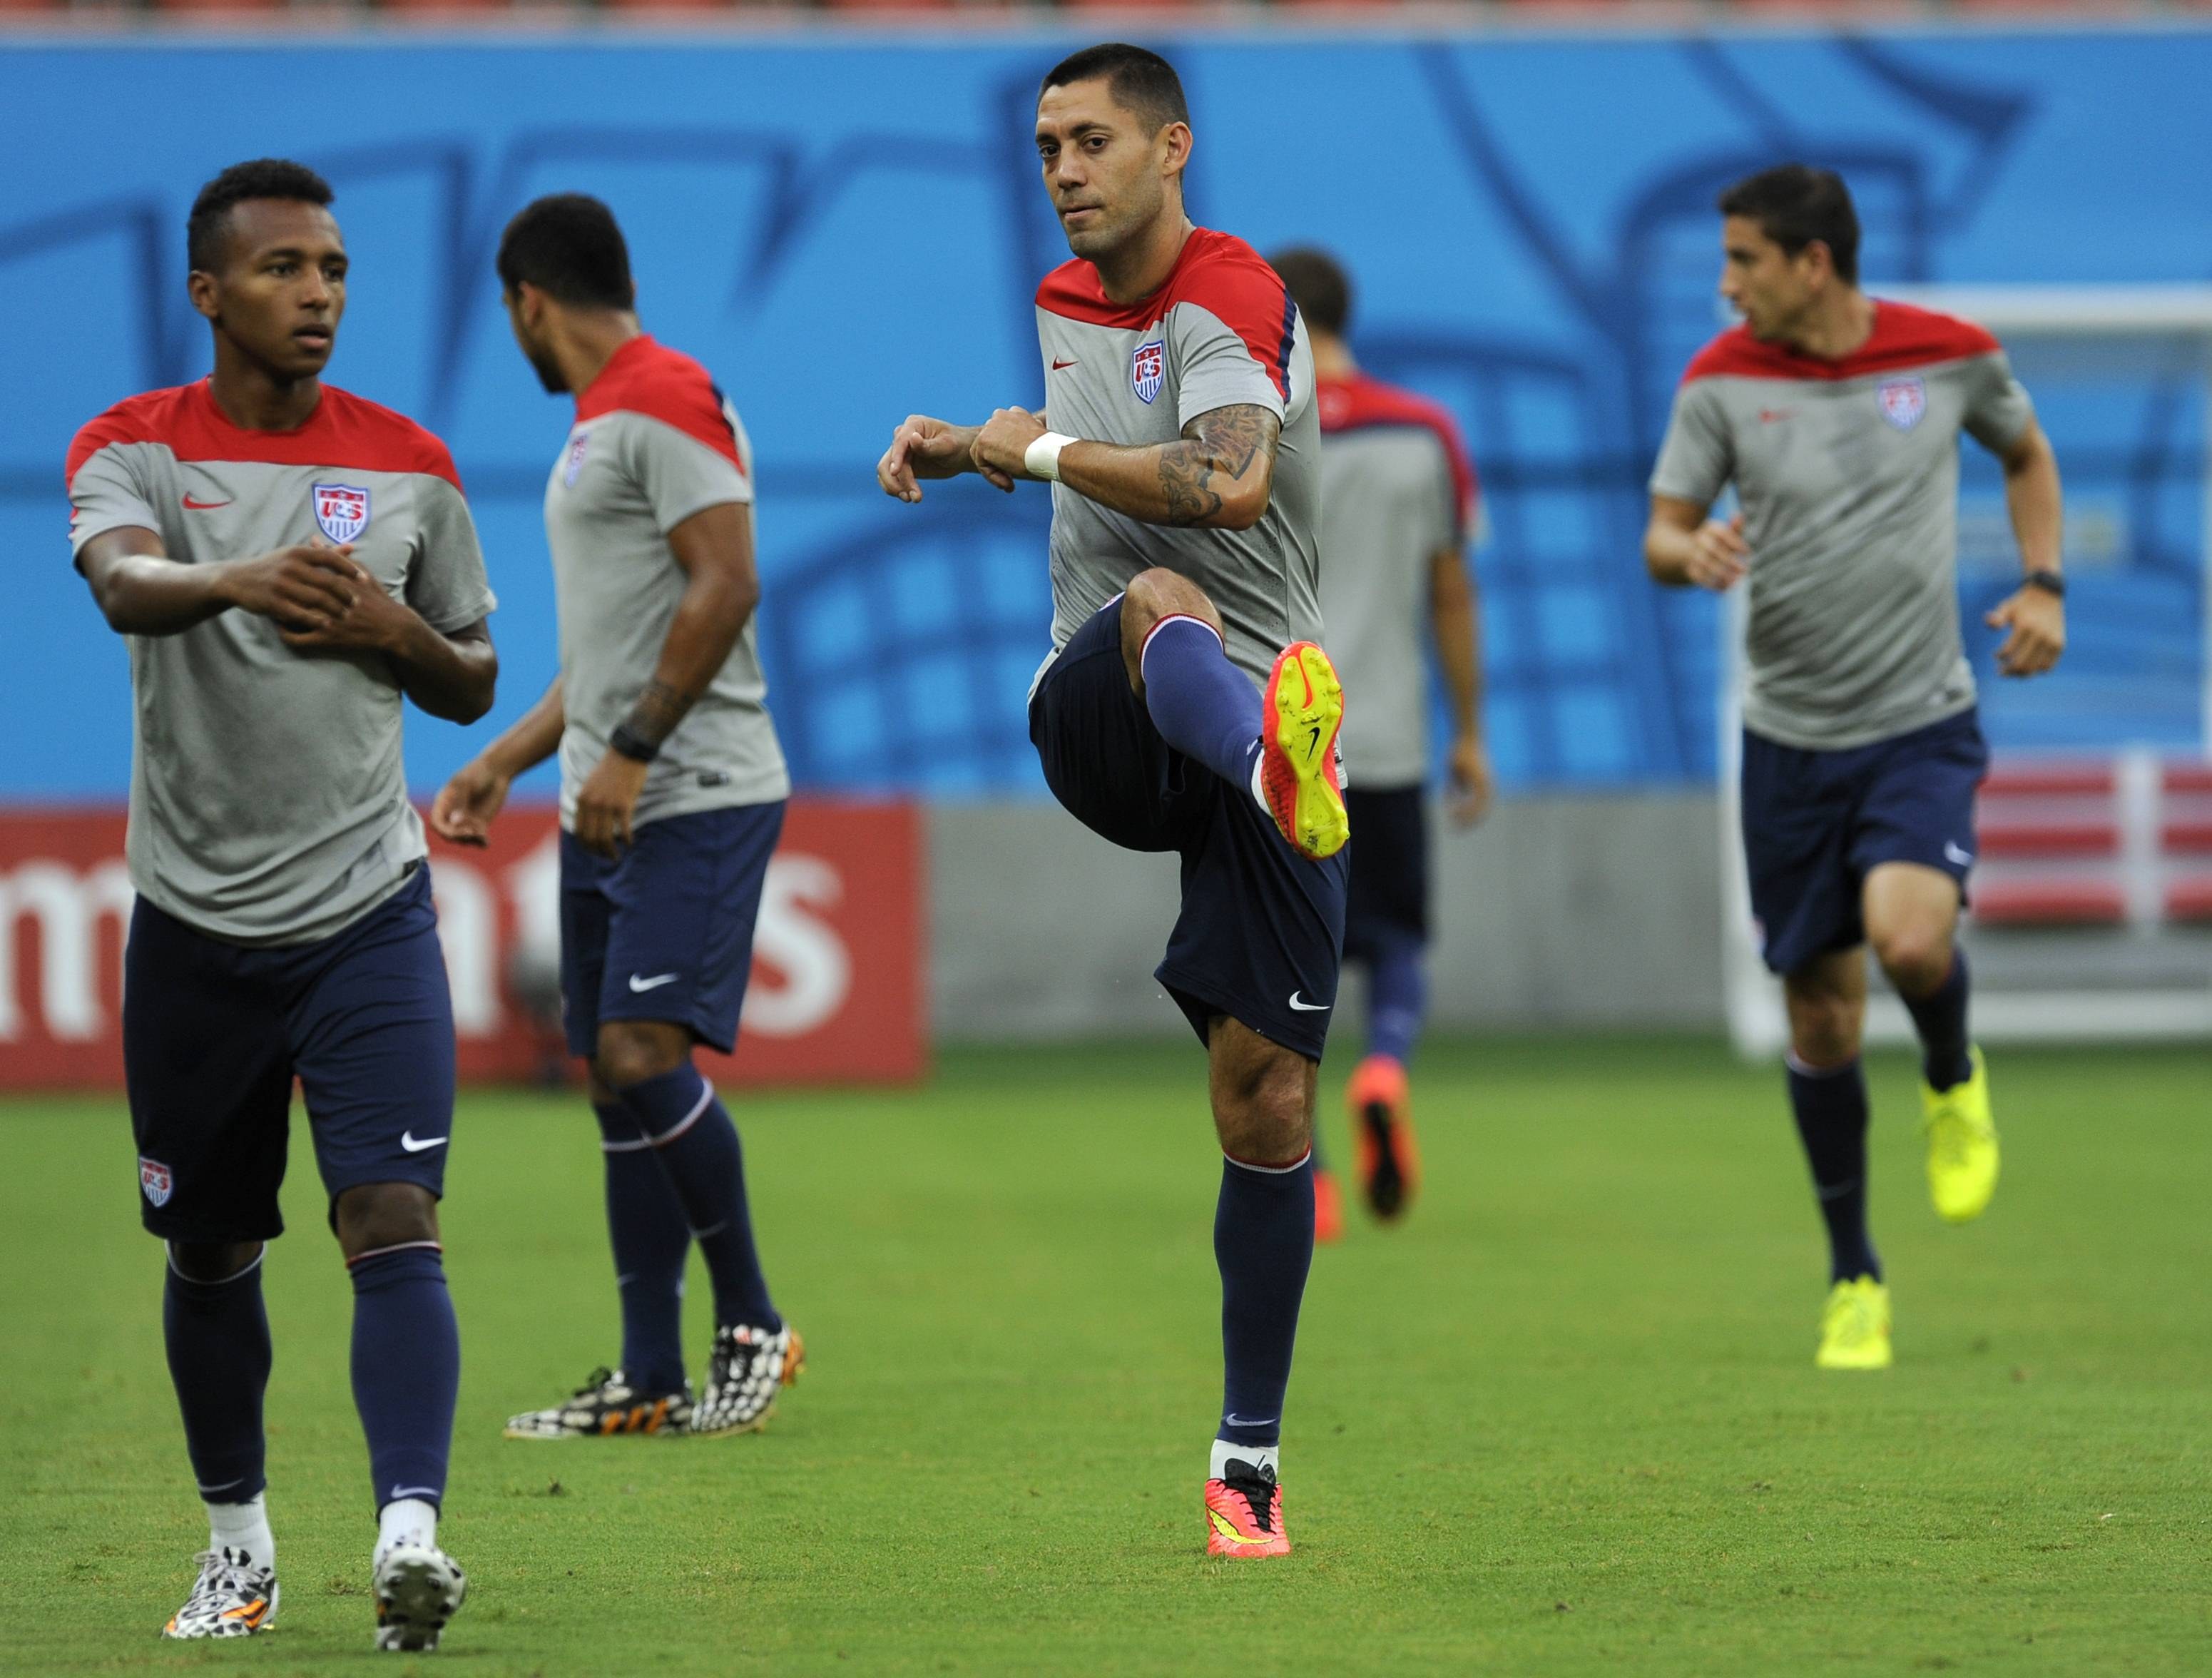 The United States' Clint Dempsey, center, and Julian Green, left, work out during a training session Saturday at the Arena da Amazonia in Manaus, Brazil. The U.S. will play Portugal in group G of the 2014 soccer World Cup Sunday.